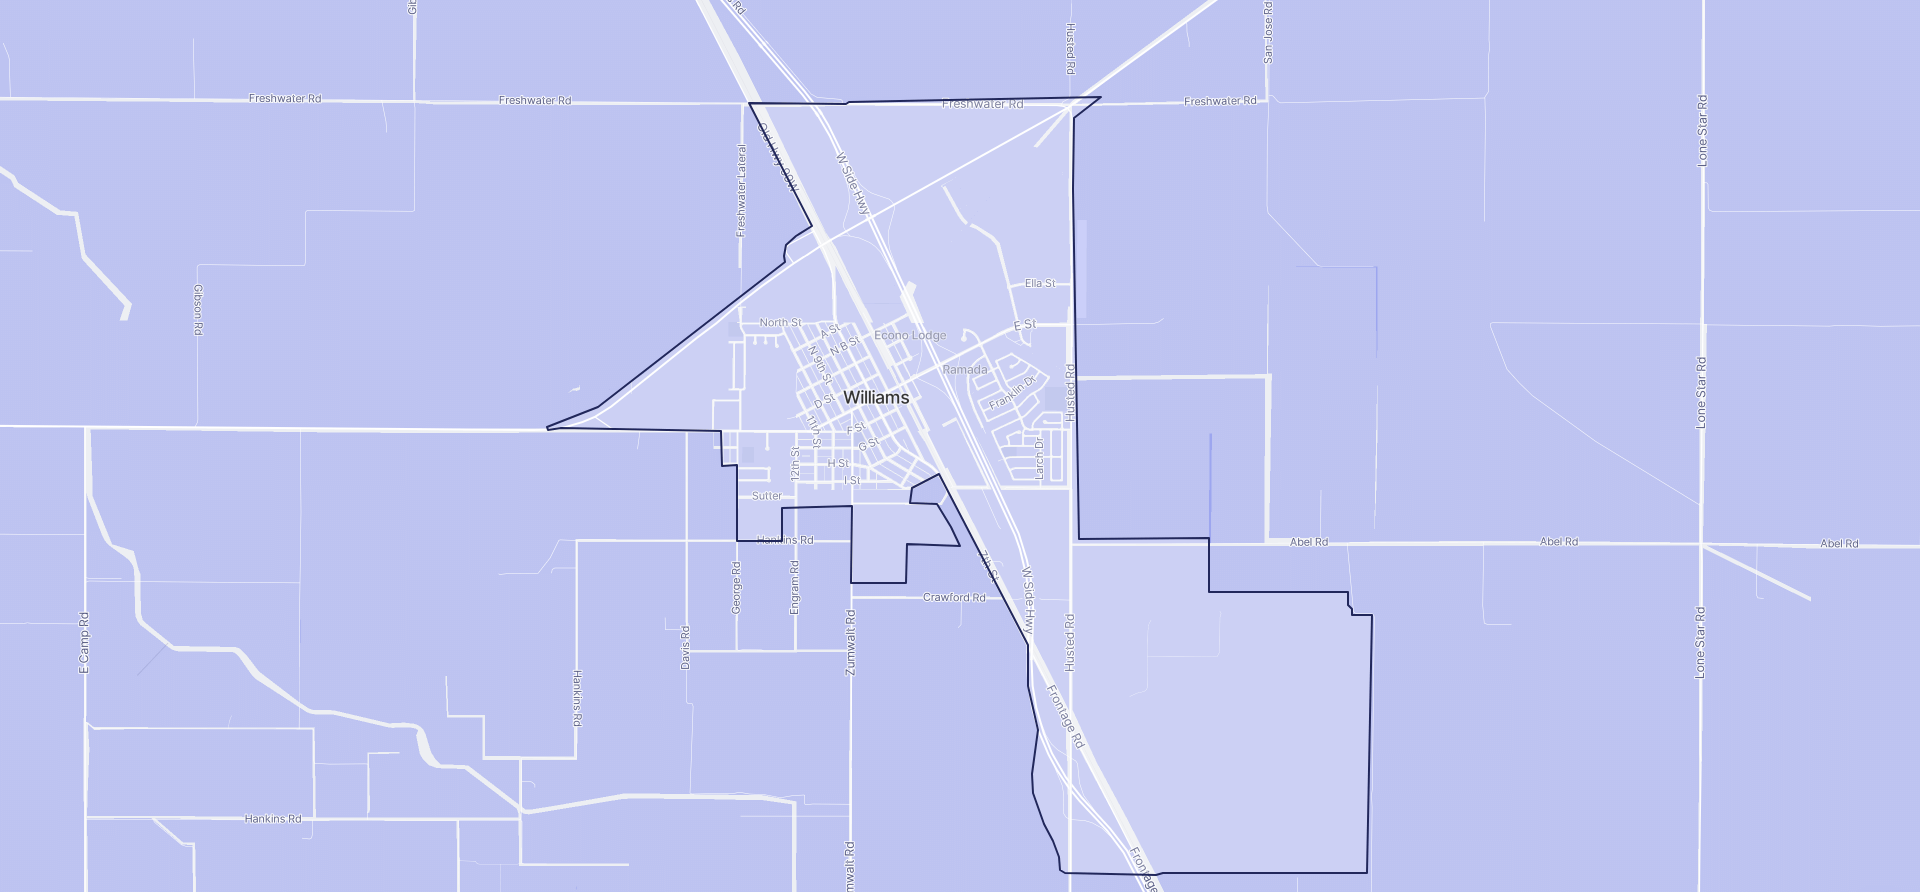 Image of Williams boundaries on a map.